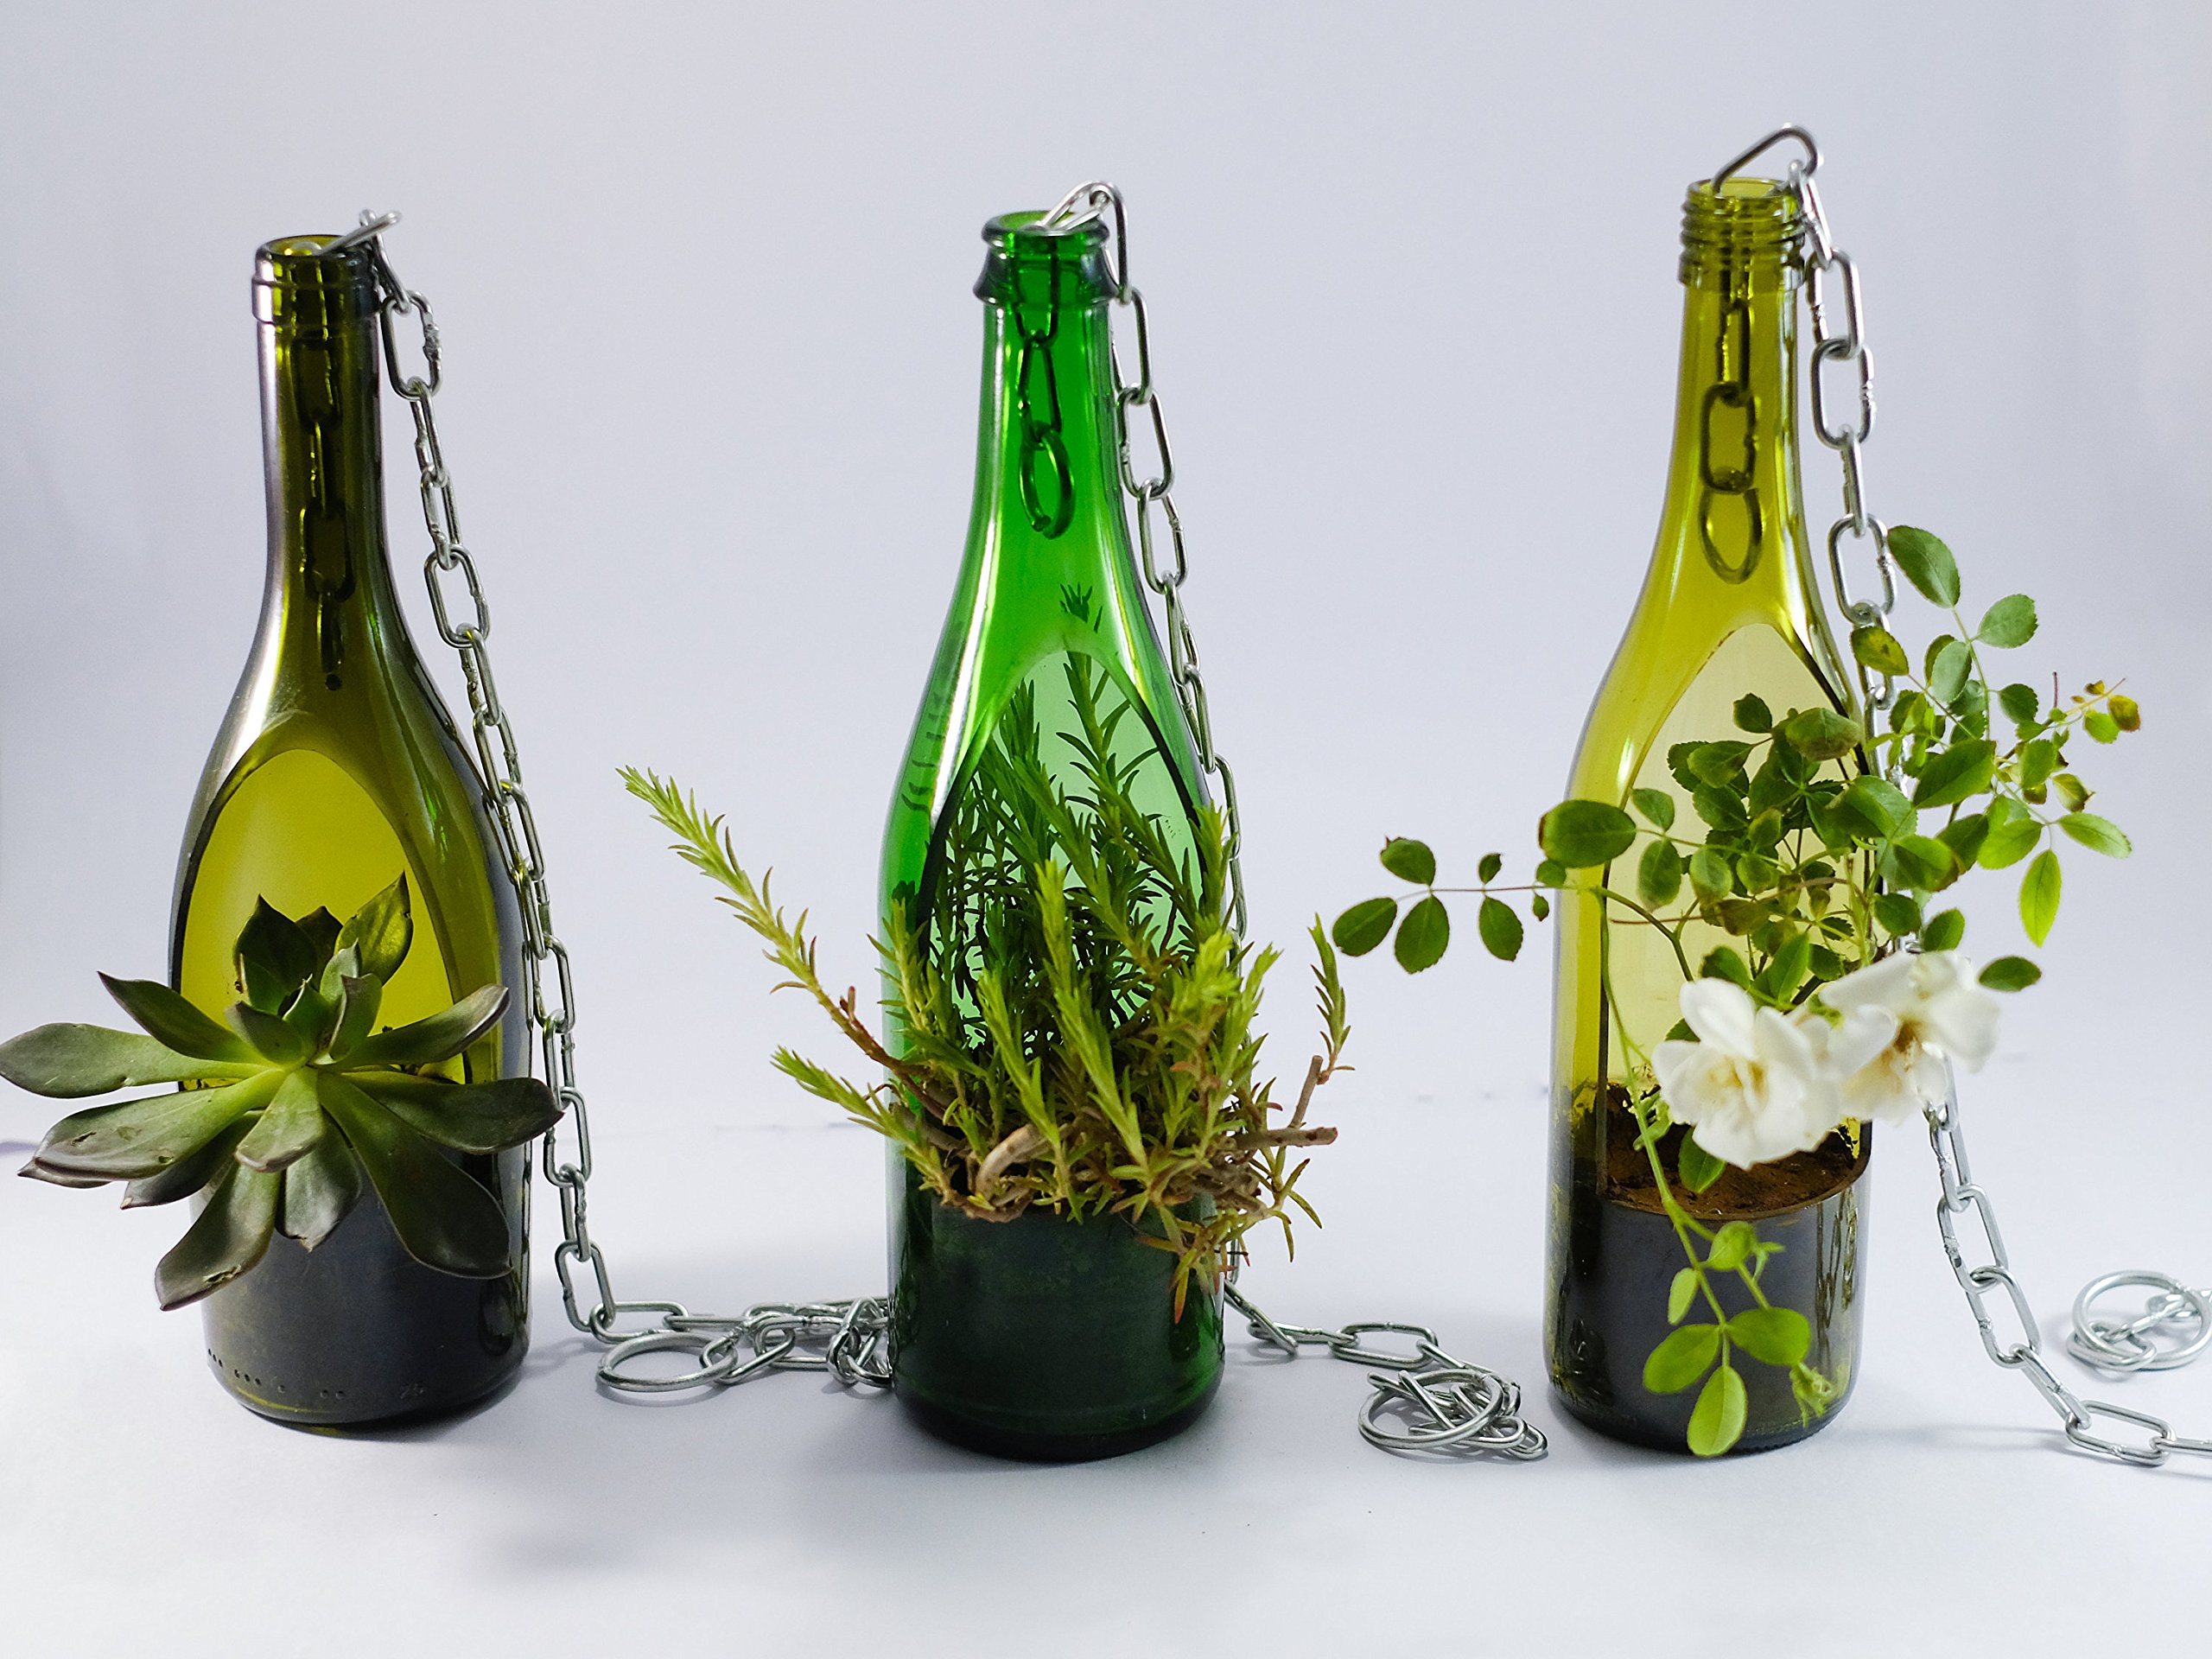 Succulent Planter Made from wine bottle - 2 PLANTERS